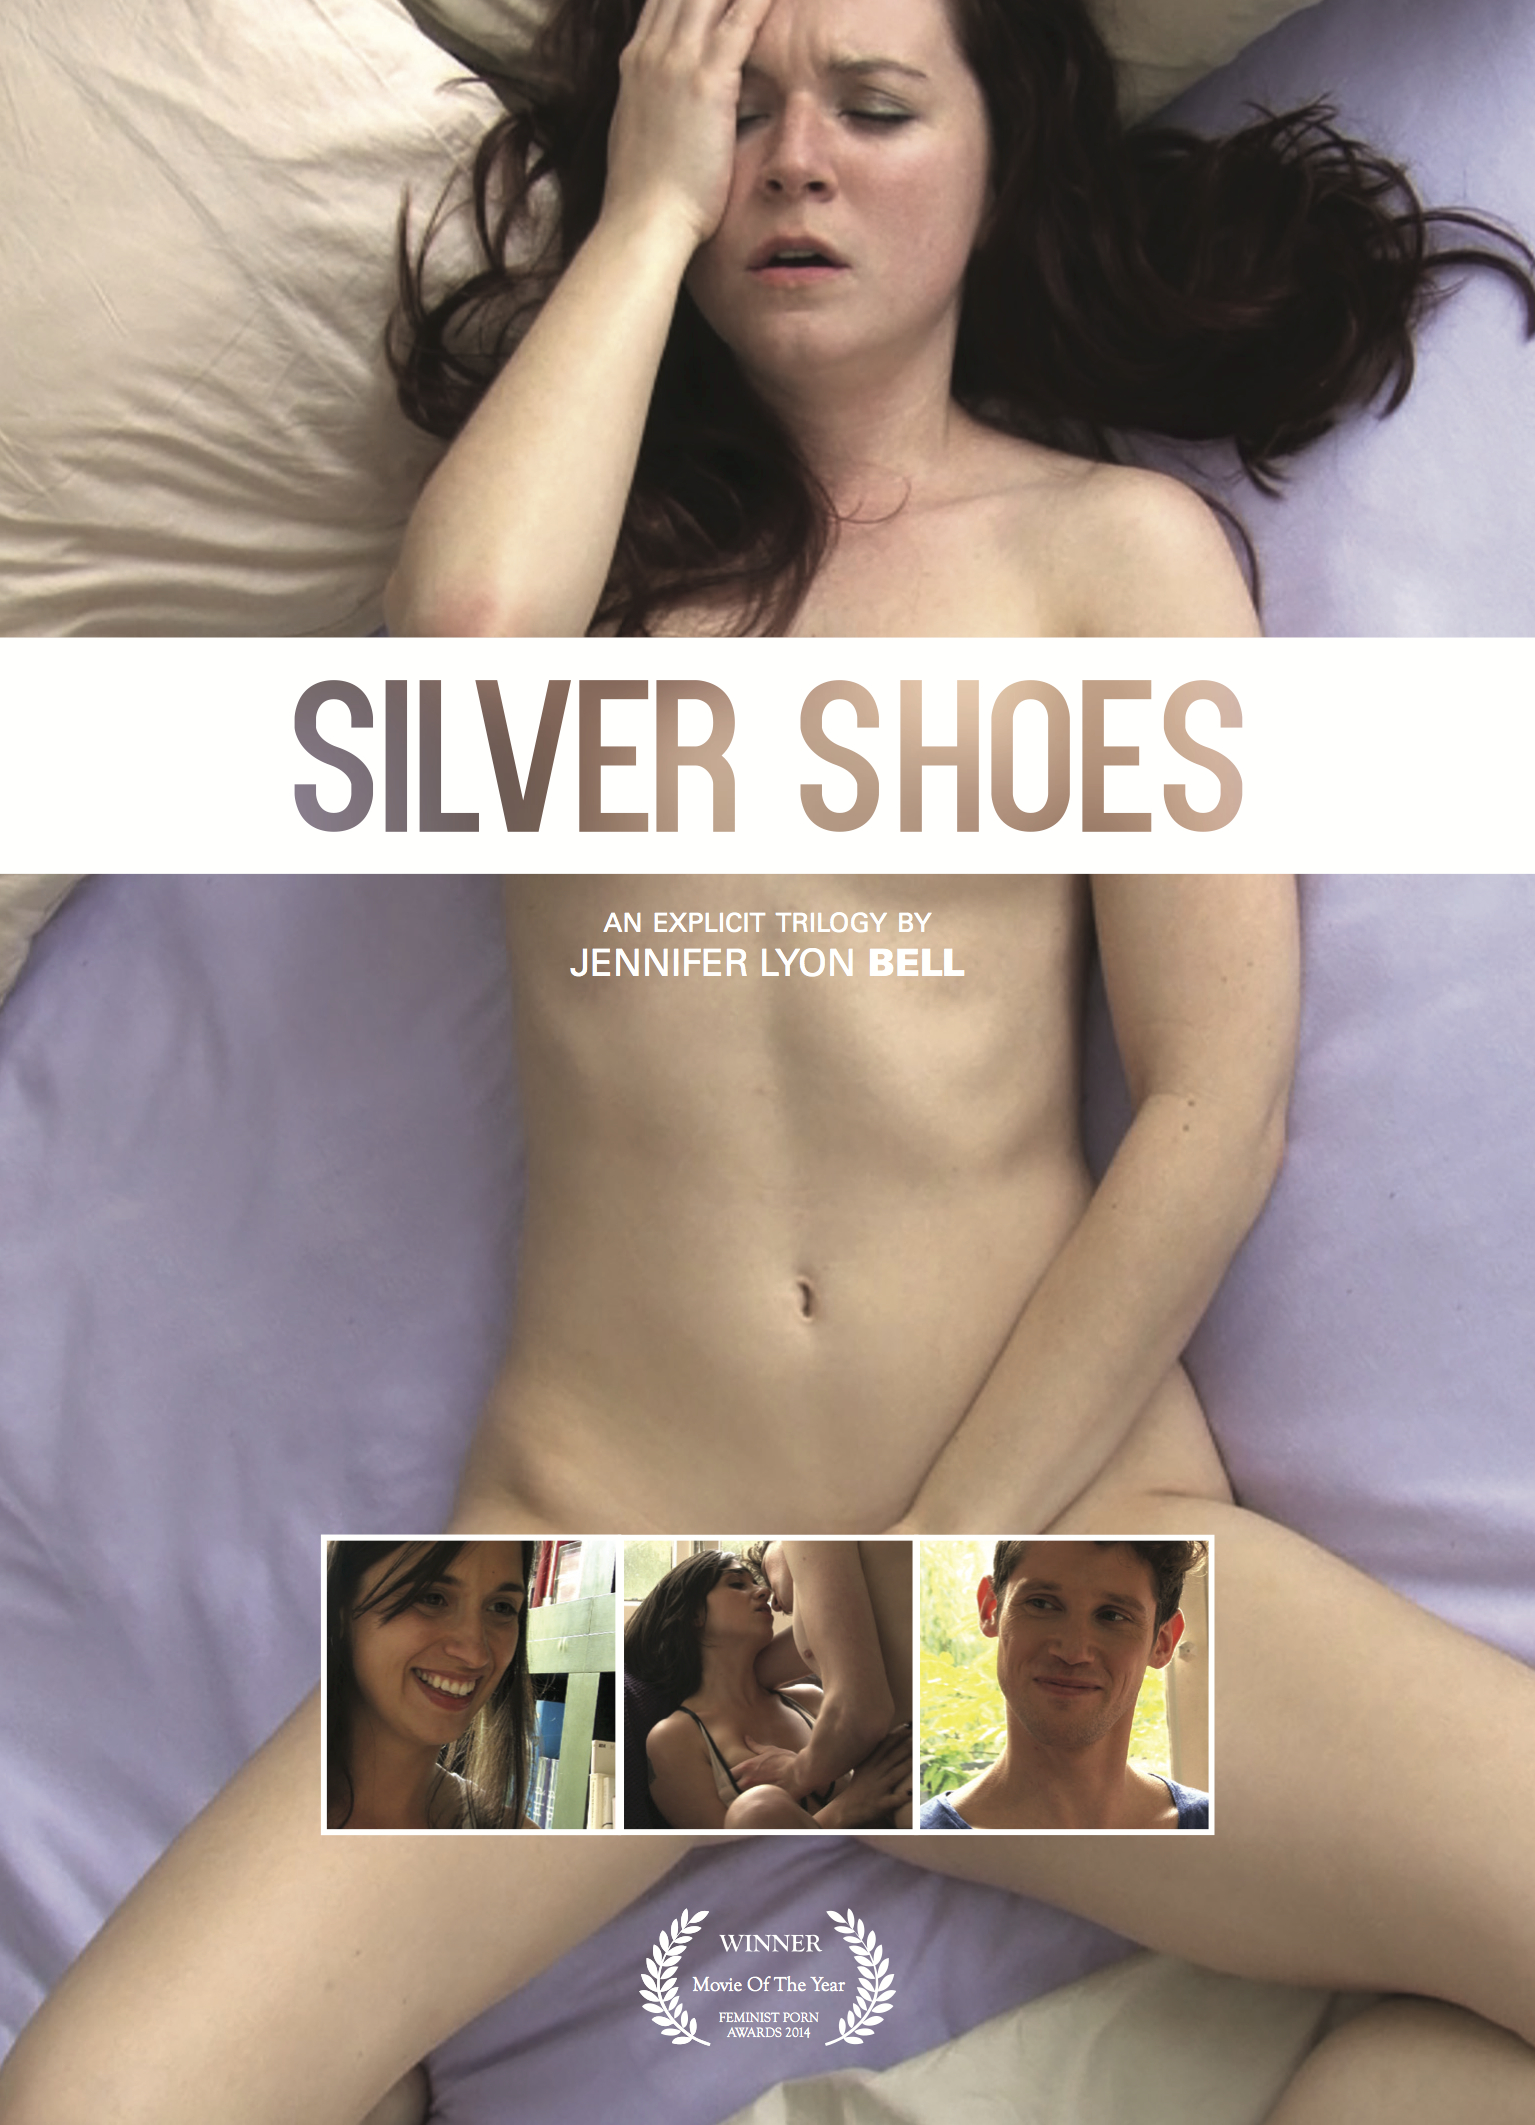 [Adult] Silver Shoes (2015) English WEB-HDRip – 720P – x264 | 700MB Download